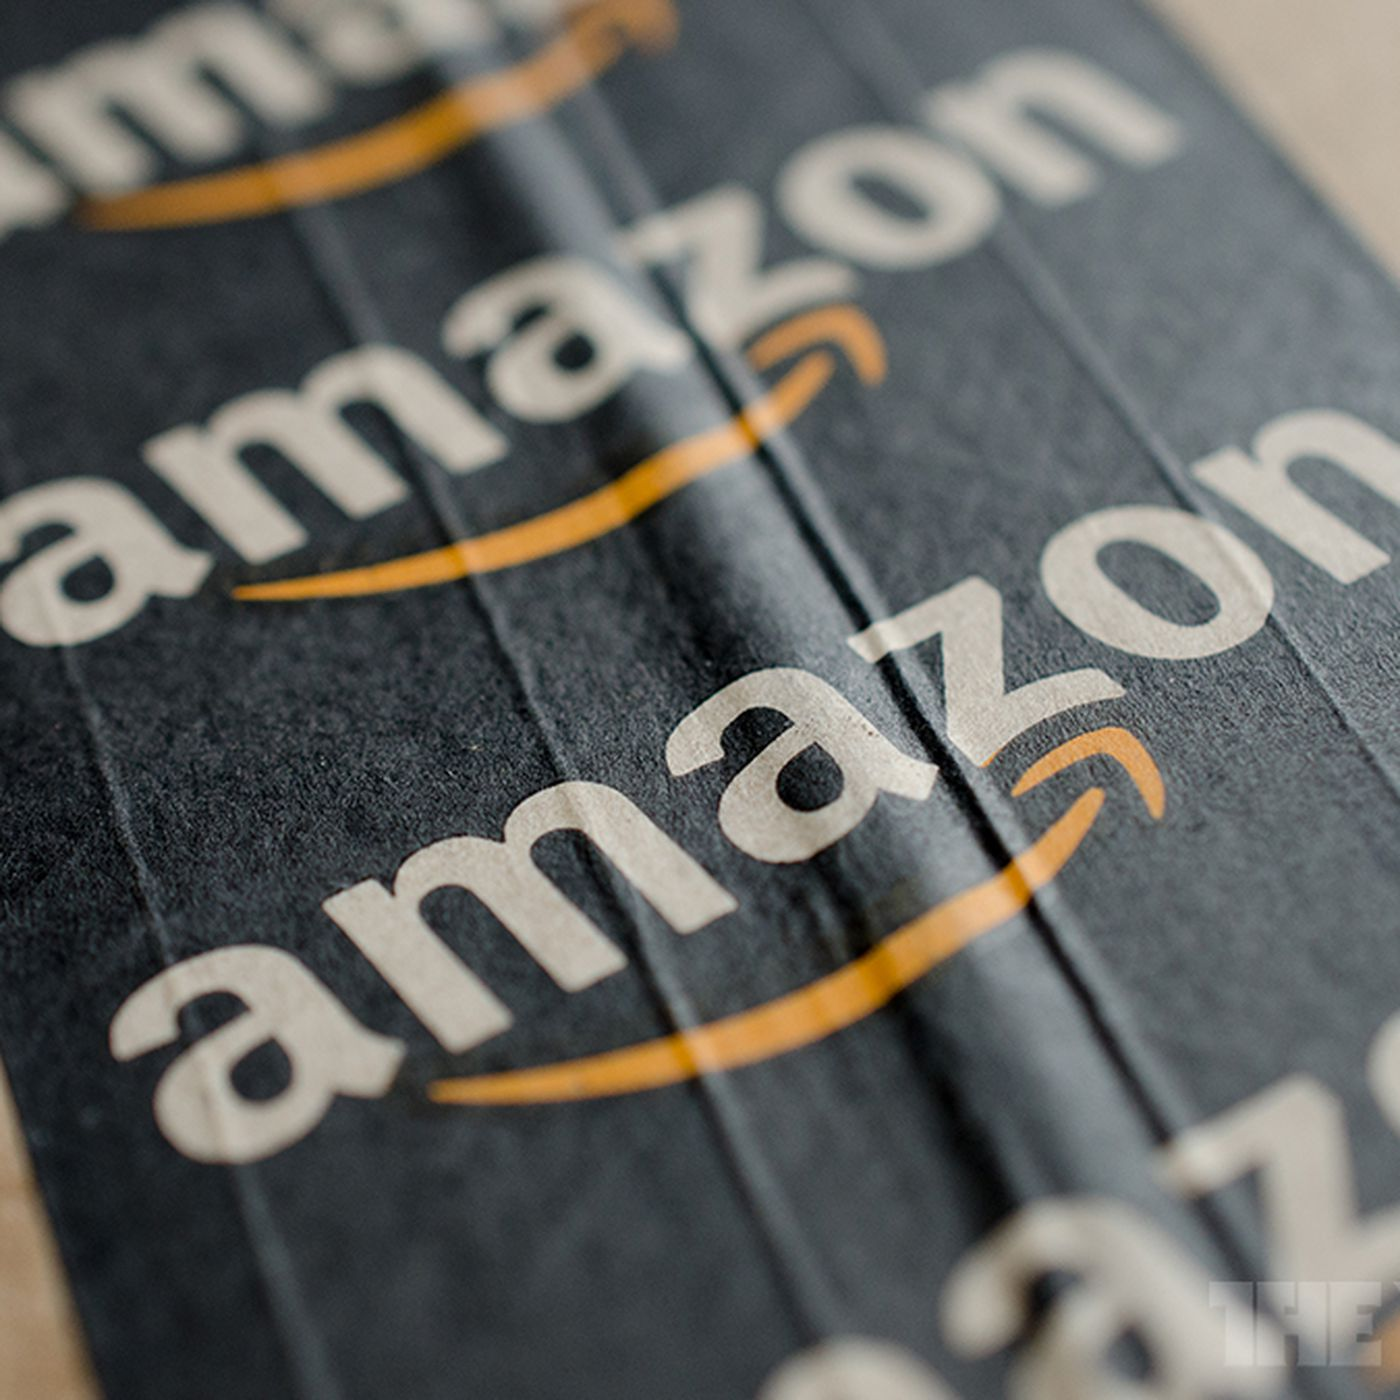 Amazon discontinues Unlimited Photos plan as it launches